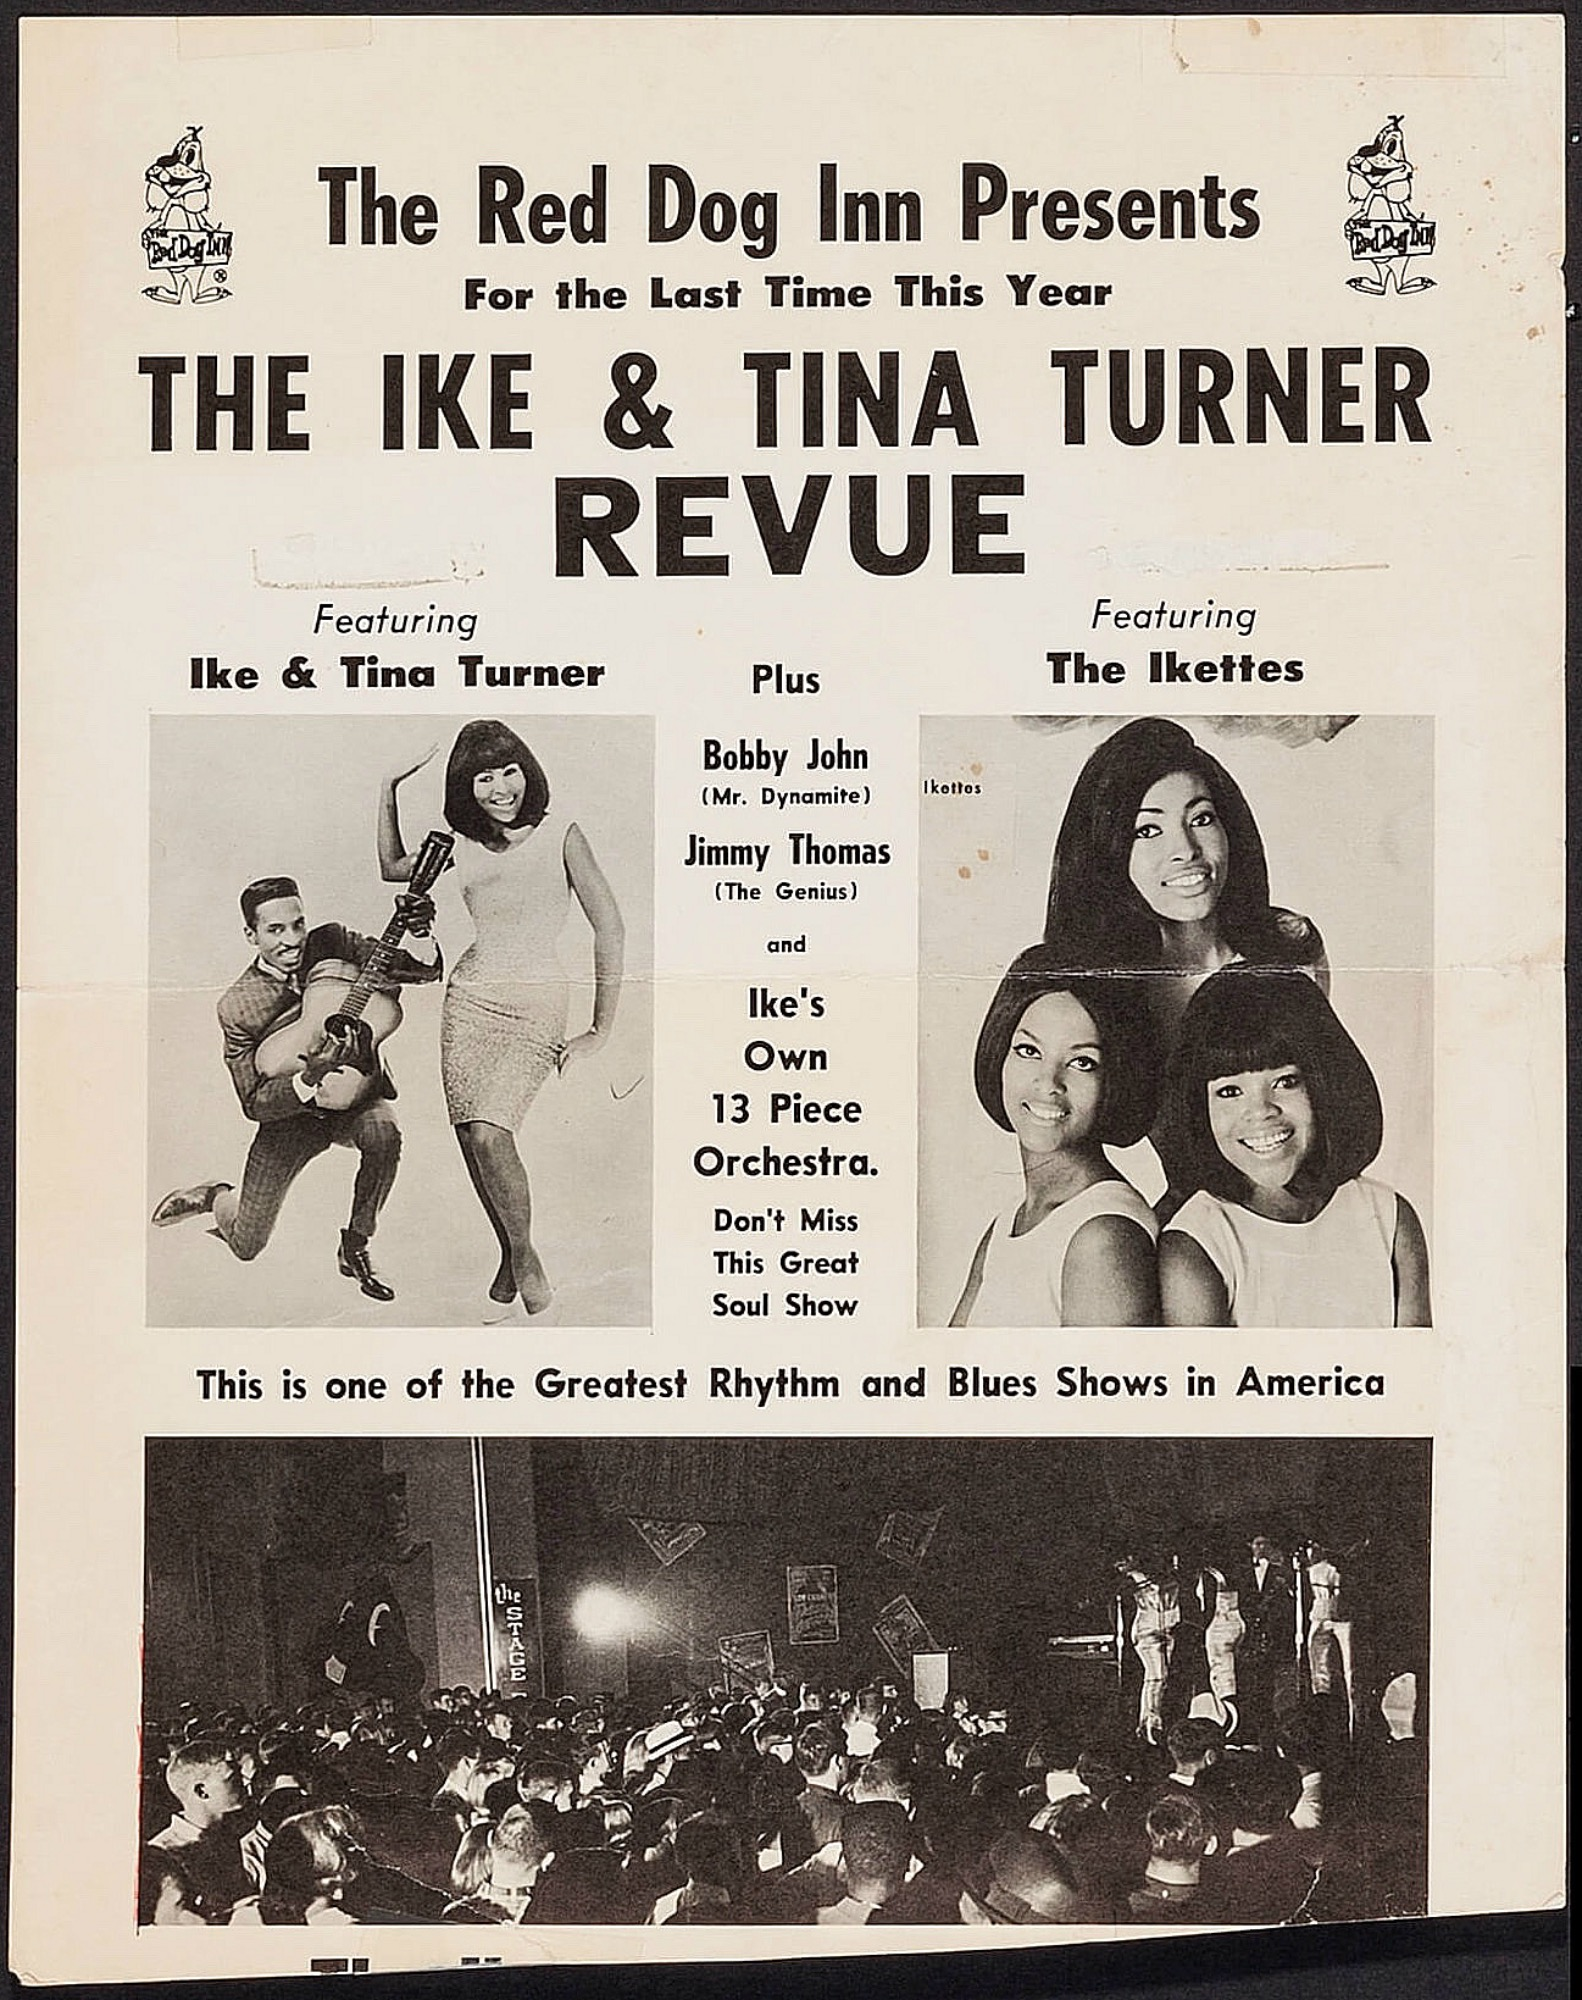 Tina Turner Concerts 1960s | Concerts Wiki | FANDOM powered